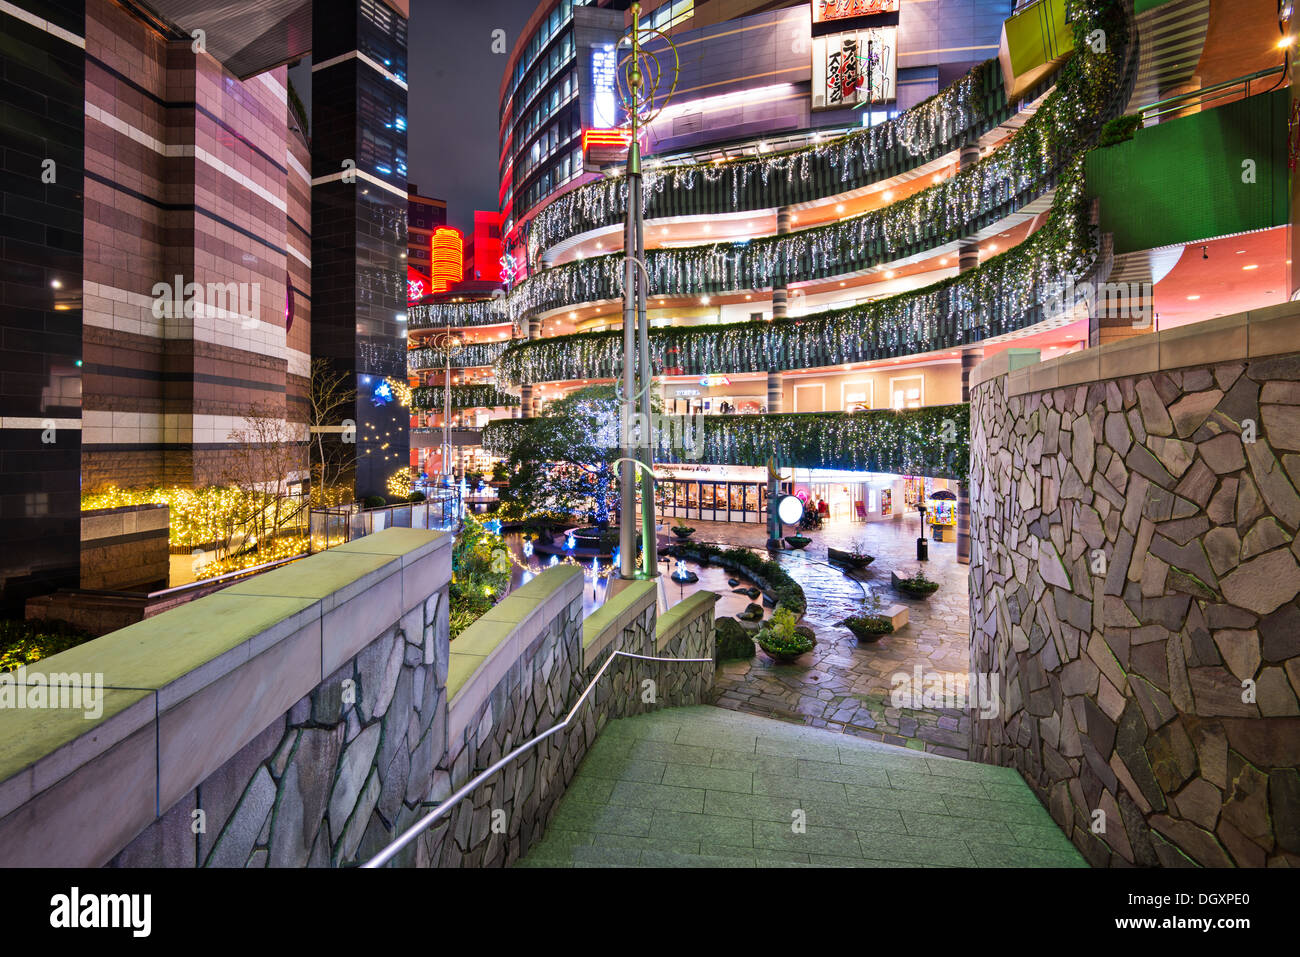 Canal City à Fukuoka, au Japon. Photo Stock